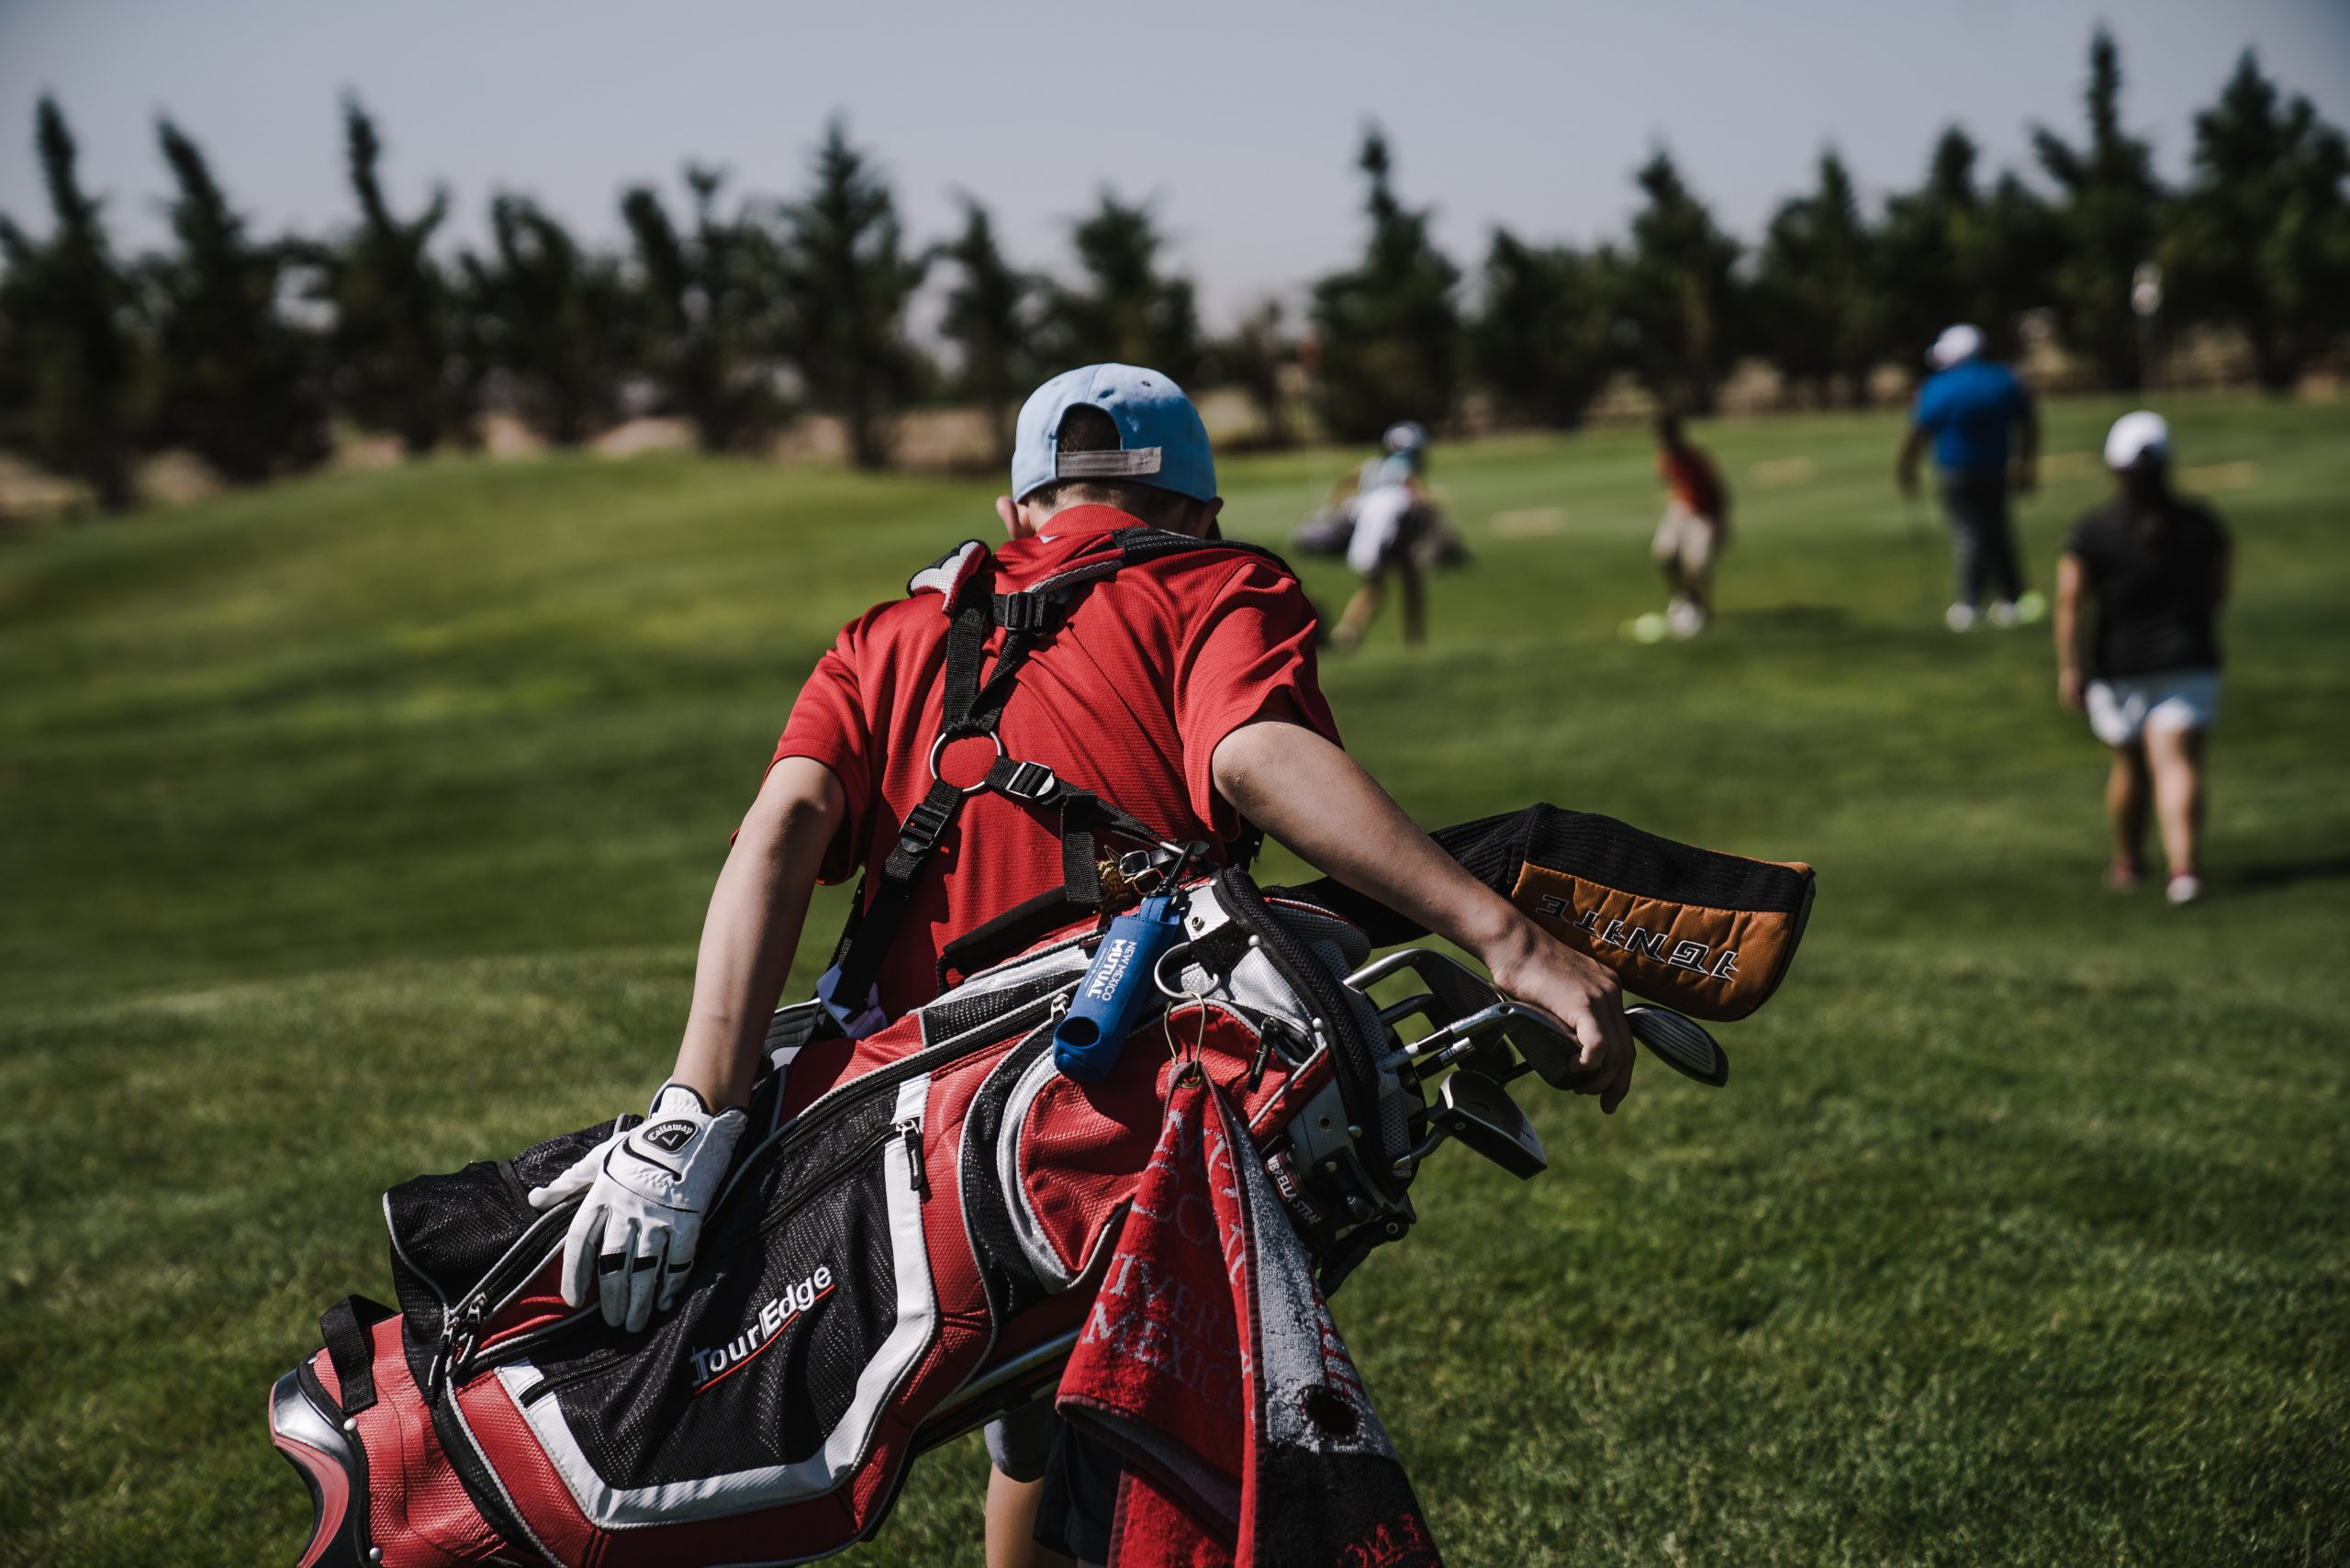 How to Keep Beer Cold in Golf Bag